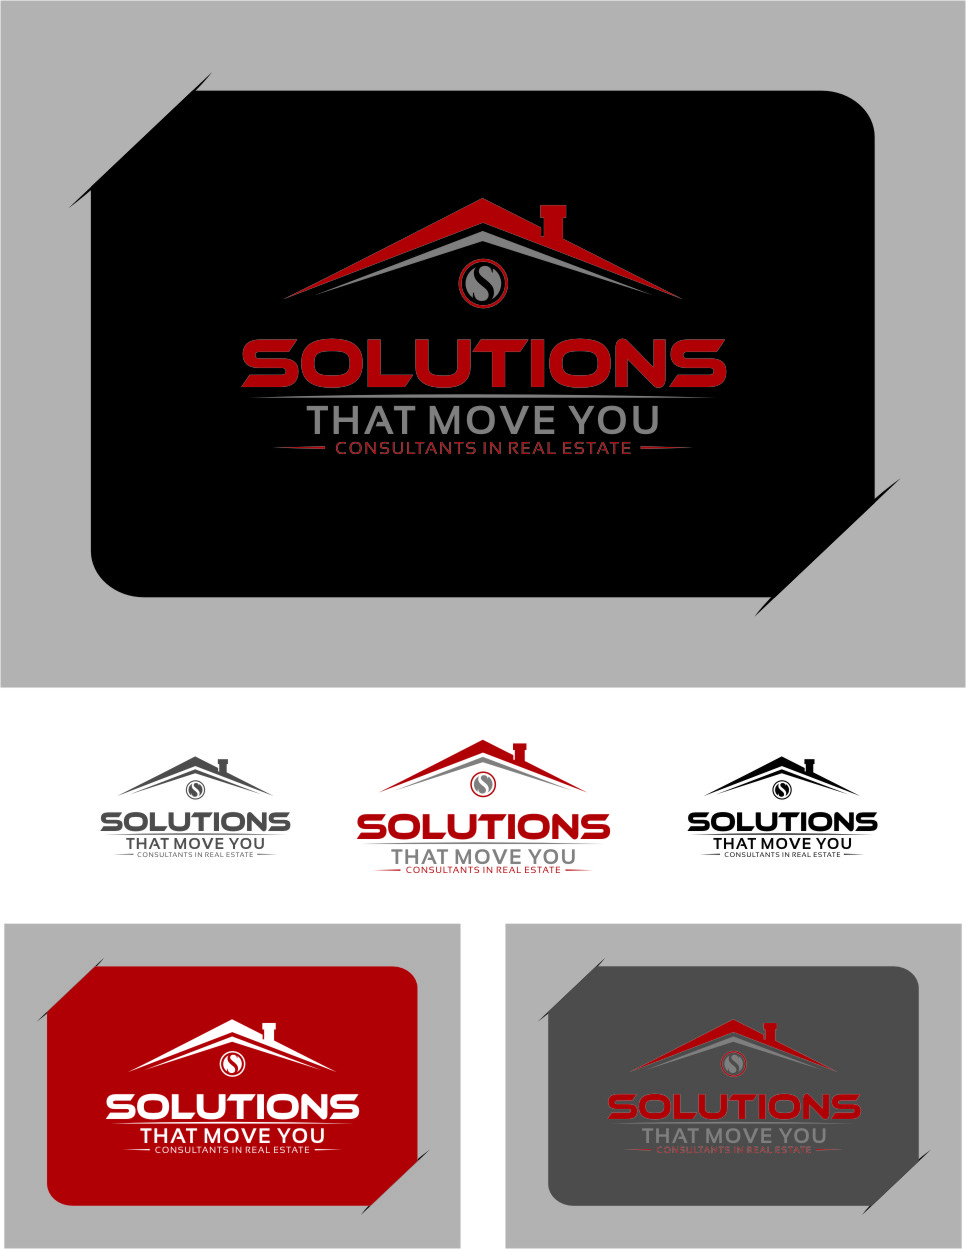 Logo Design by Ngepet_art - Entry No. 202 in the Logo Design Contest Imaginative Logo Design for Solutions That Move You.